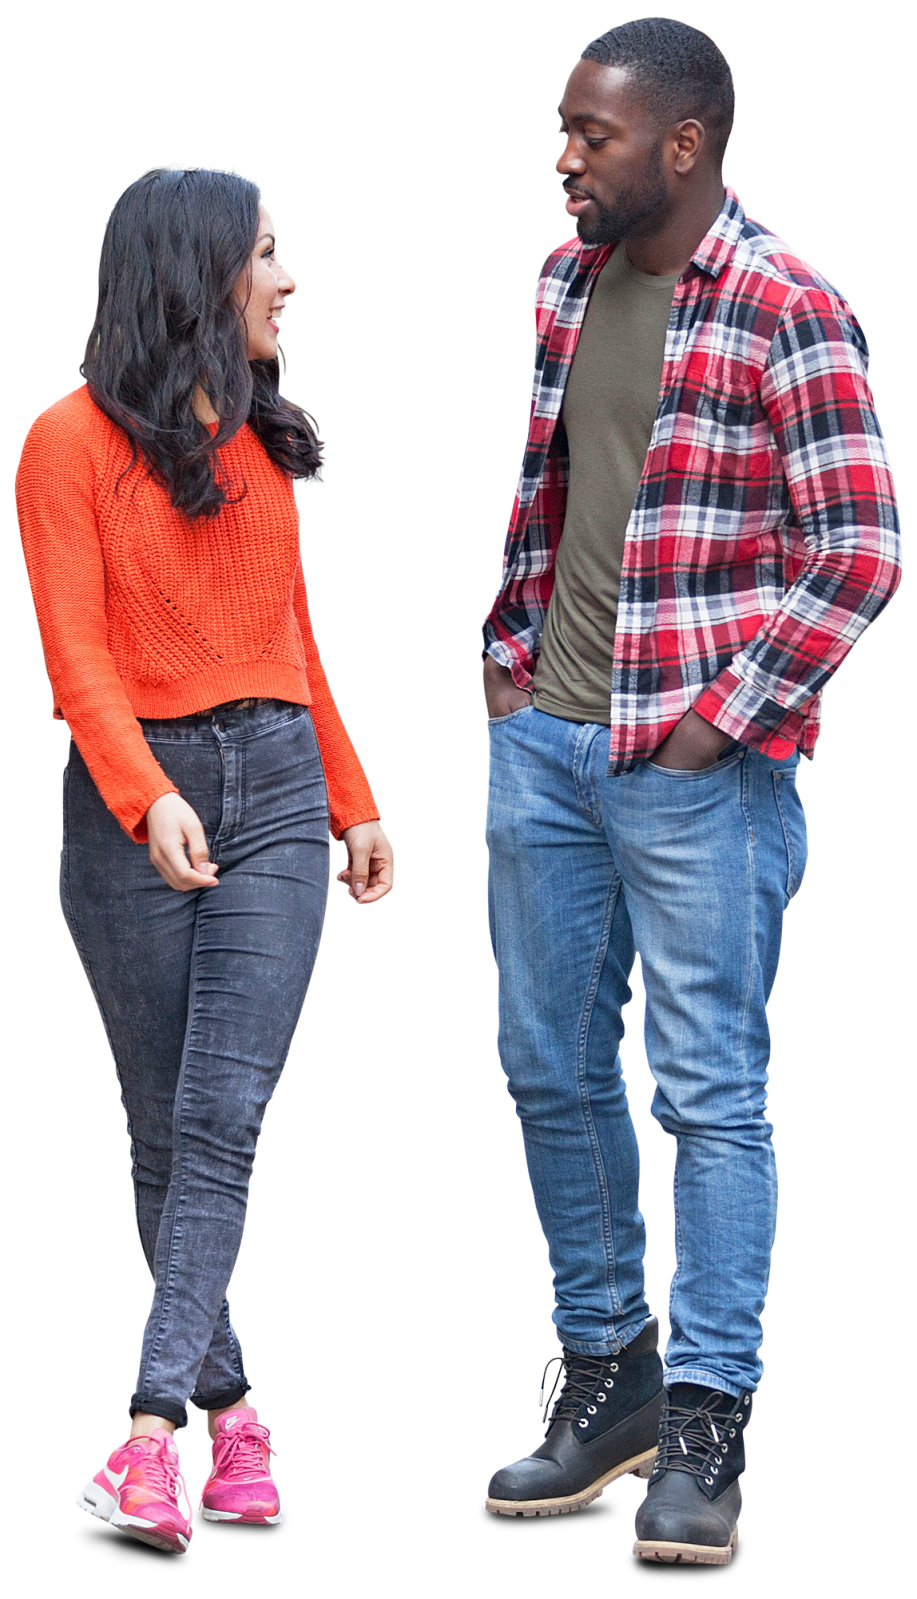 Clipart people cut out. Friends couple standing free